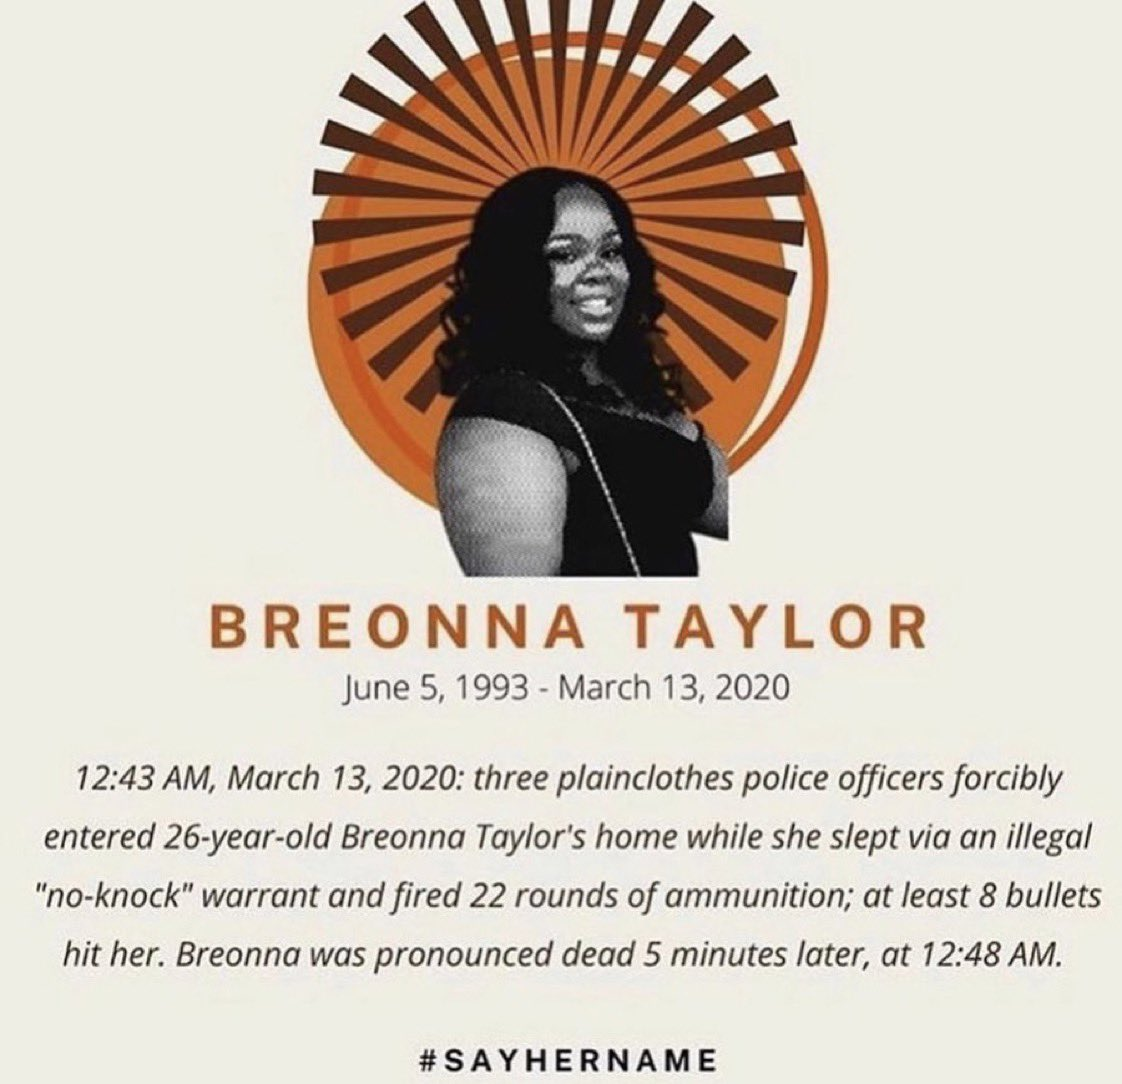 Please don't forget #BreonnaTaylor.  Tag @DanielCameronAG @GovAndyBeshear and call 844-976-2848 to continue to demand that the officers and the system responsible for her death are held accountable. https://t.co/C6QKSoQLjL